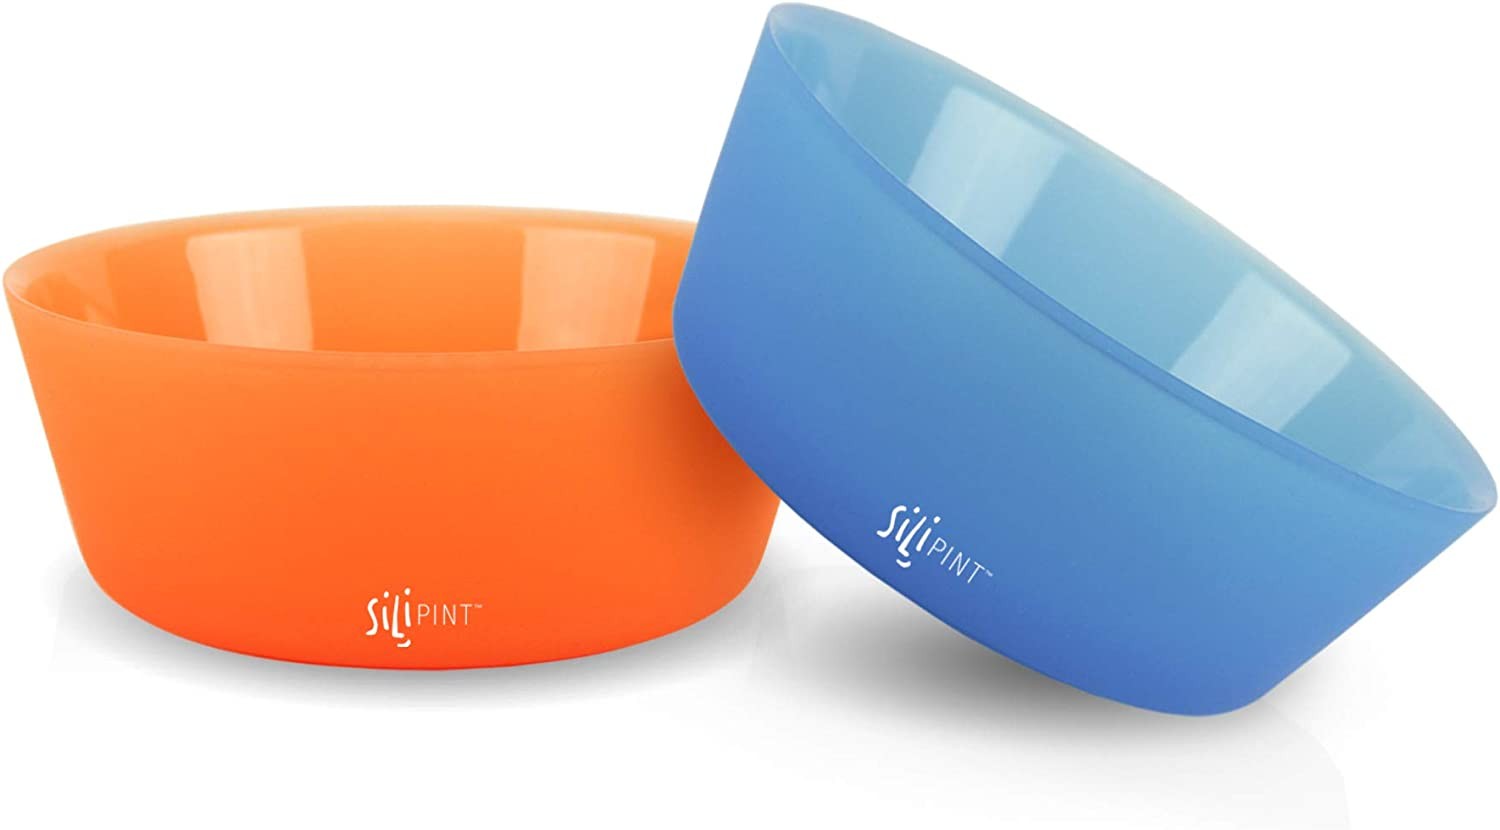 Silipint Silicone Bowl Set, U.S. Patented, BPA-Free, Unbreakable, Flexible, Microwave Safe, Oven Safe, BBQ Safe, Indoor and Outdoor Use (2-PackBend Blue, Tough Tangerine)